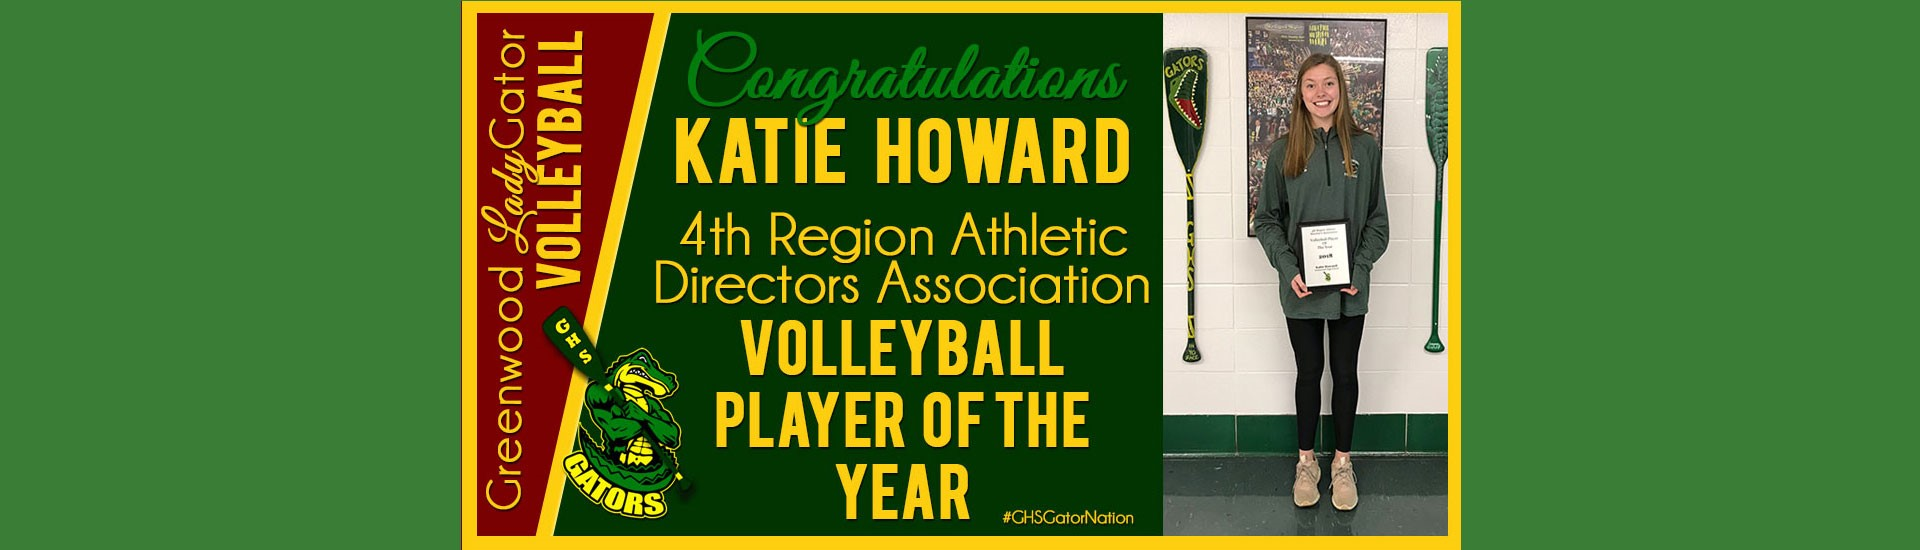 Katie Howard Volleyball Player of the Year